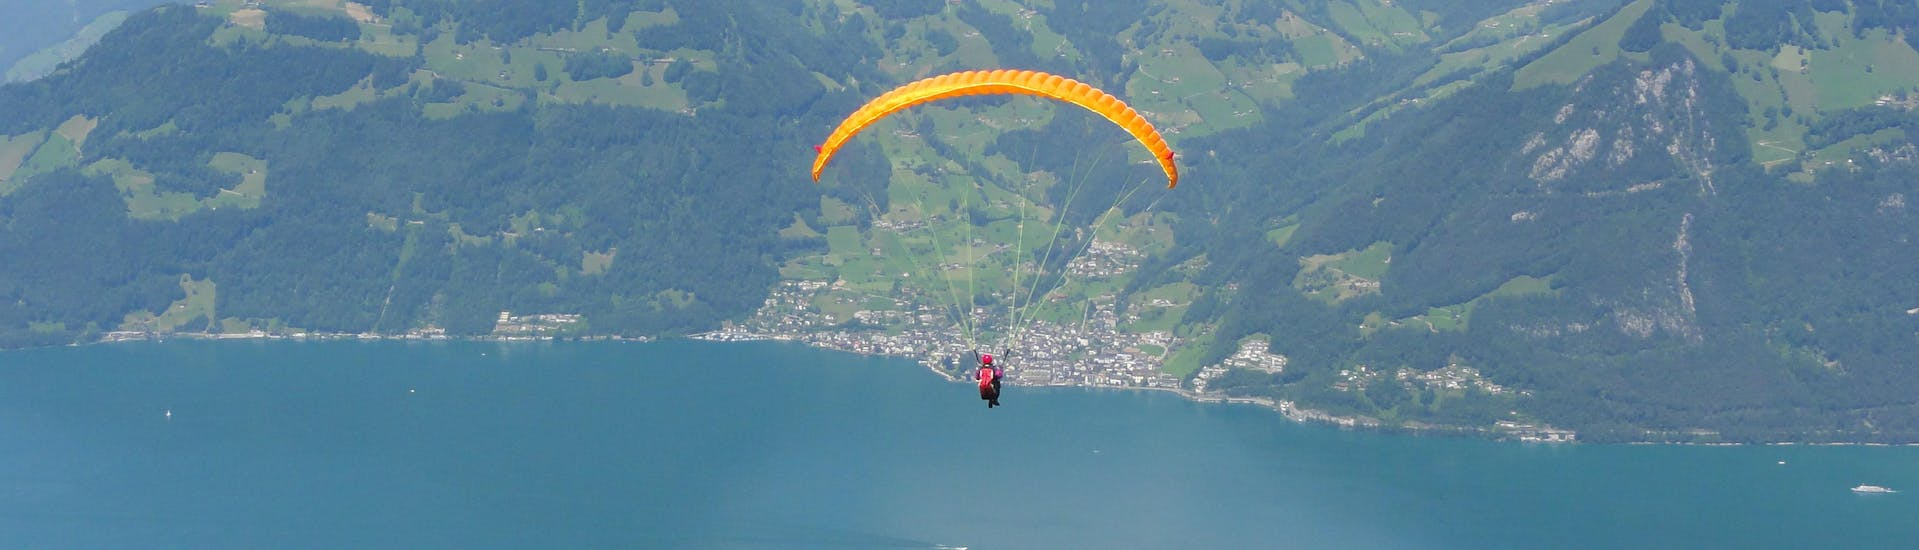 A tandem master and his passenger are sailing through cloudy skies while paragliding in Lucerne.